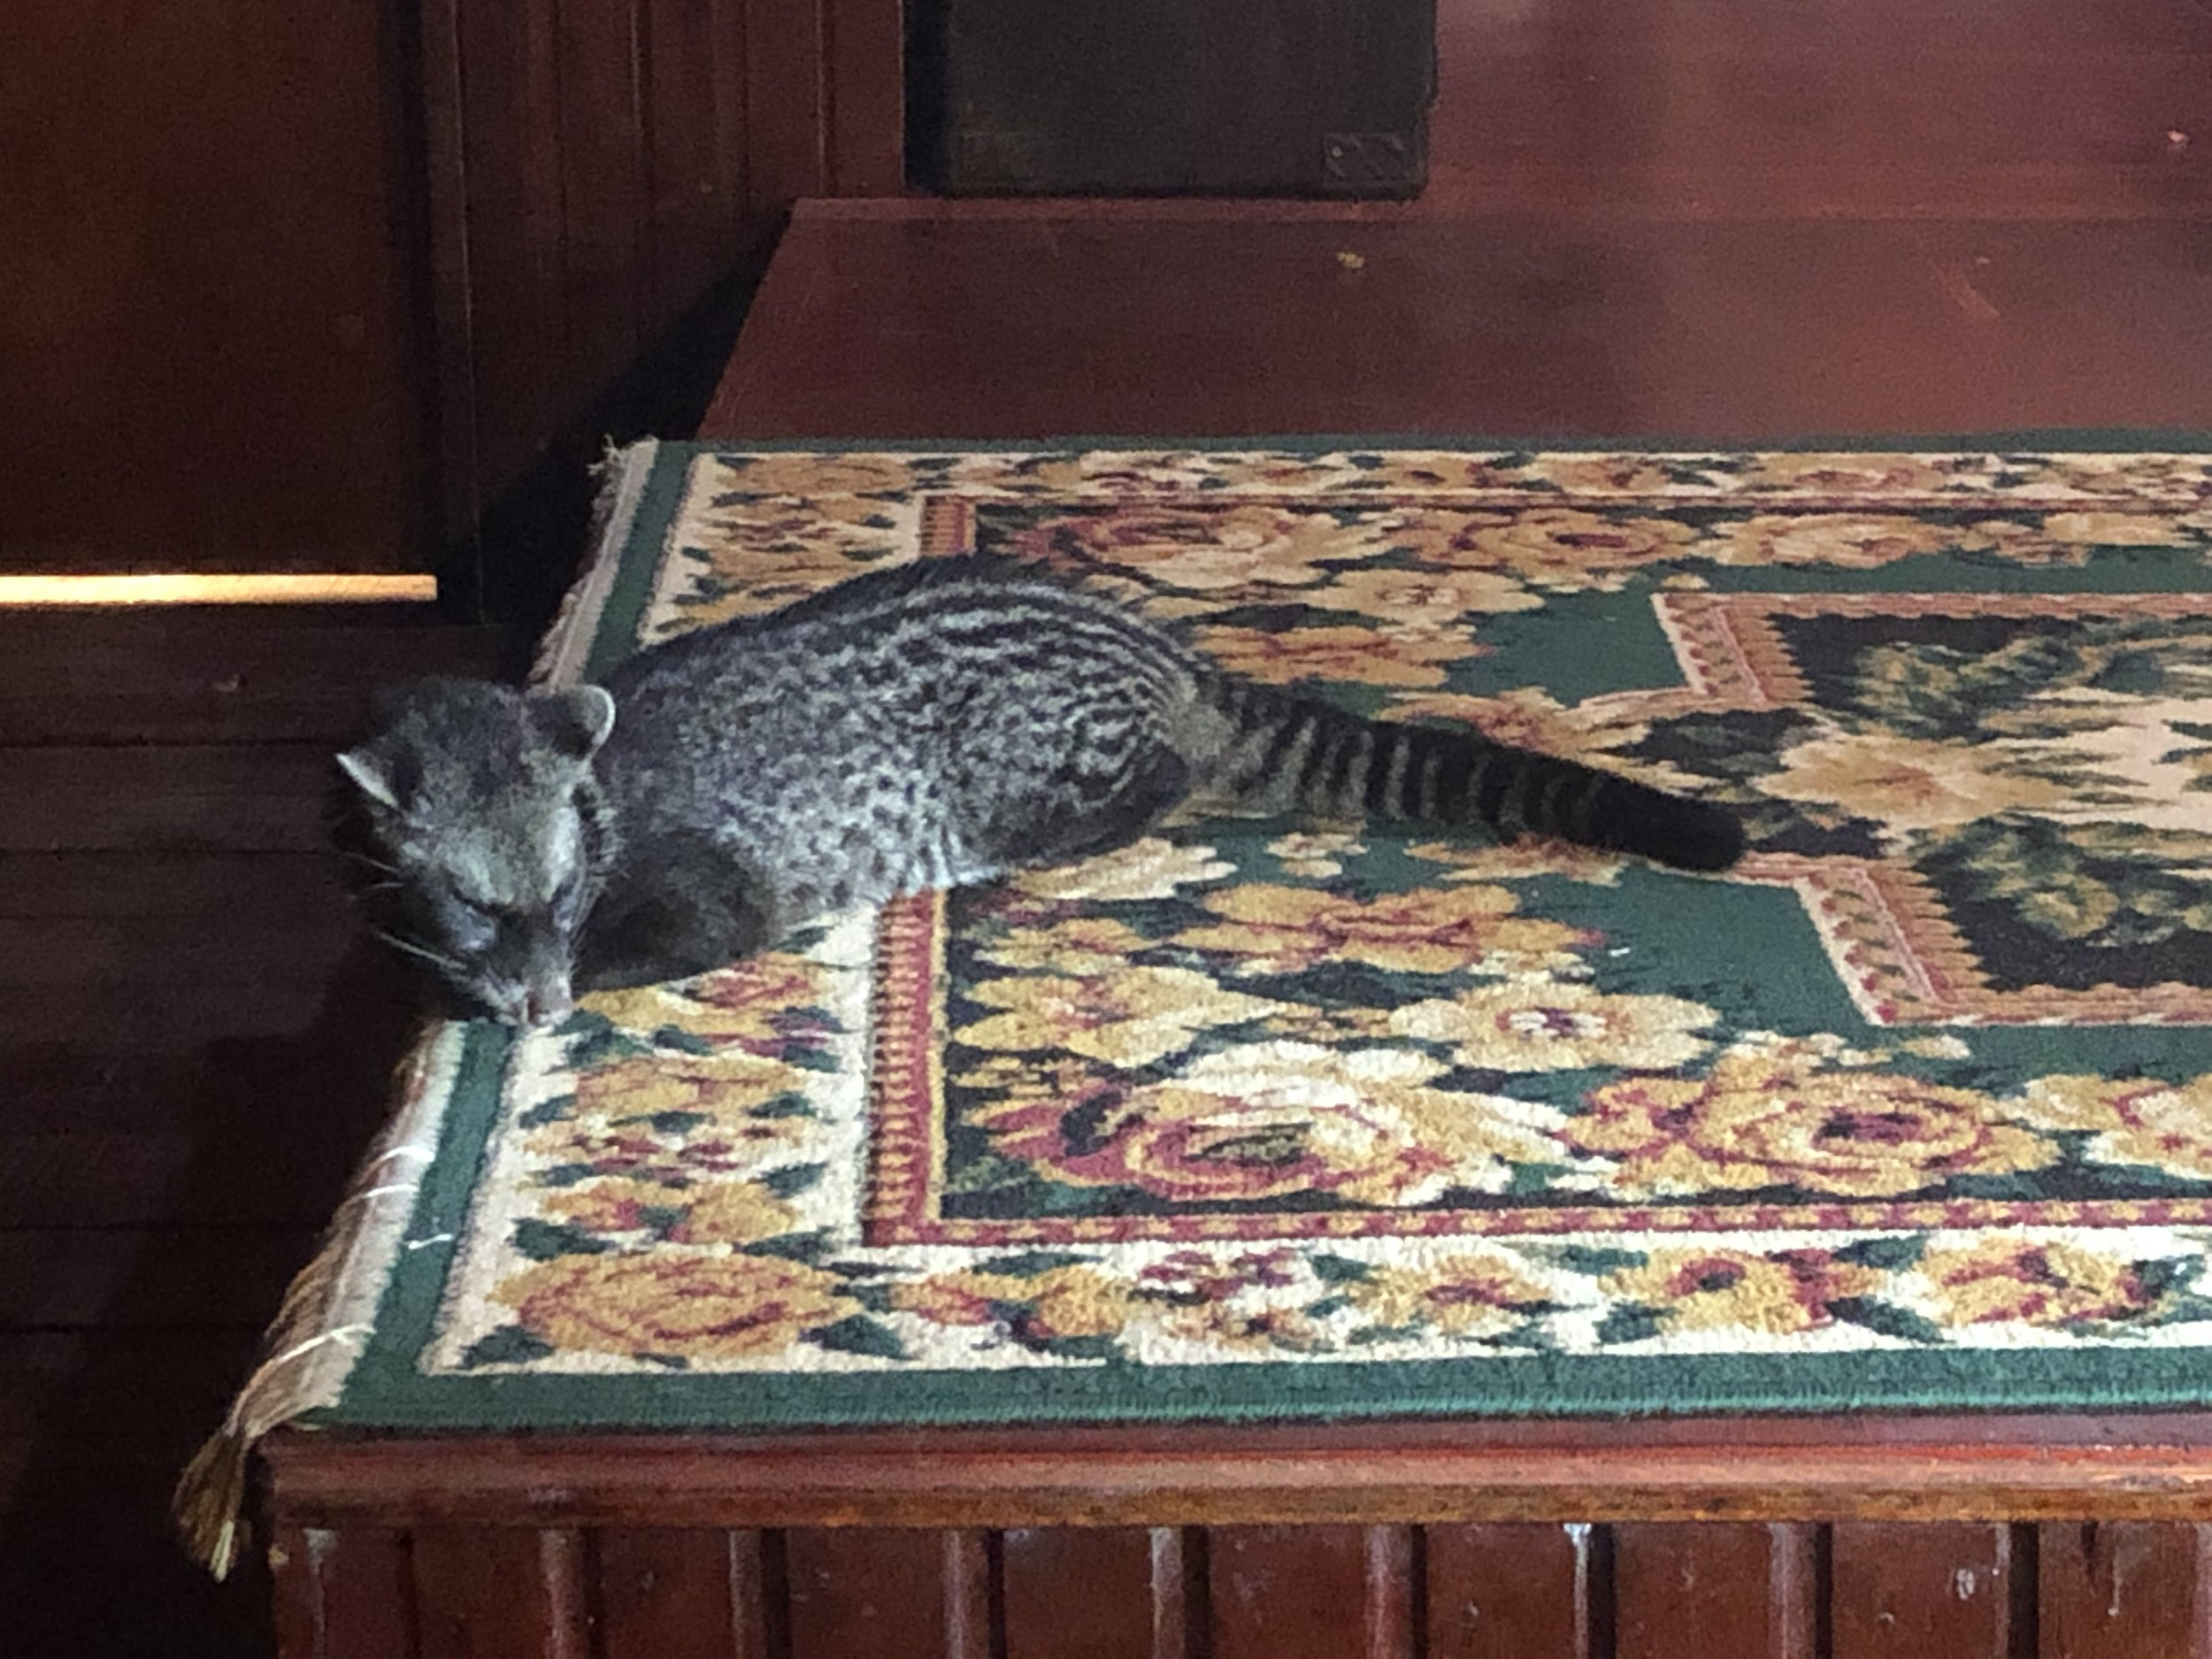 This semi-tame civet making itself at home in Bilit Lodge - it's not a cat and actually closely related to the mongoose